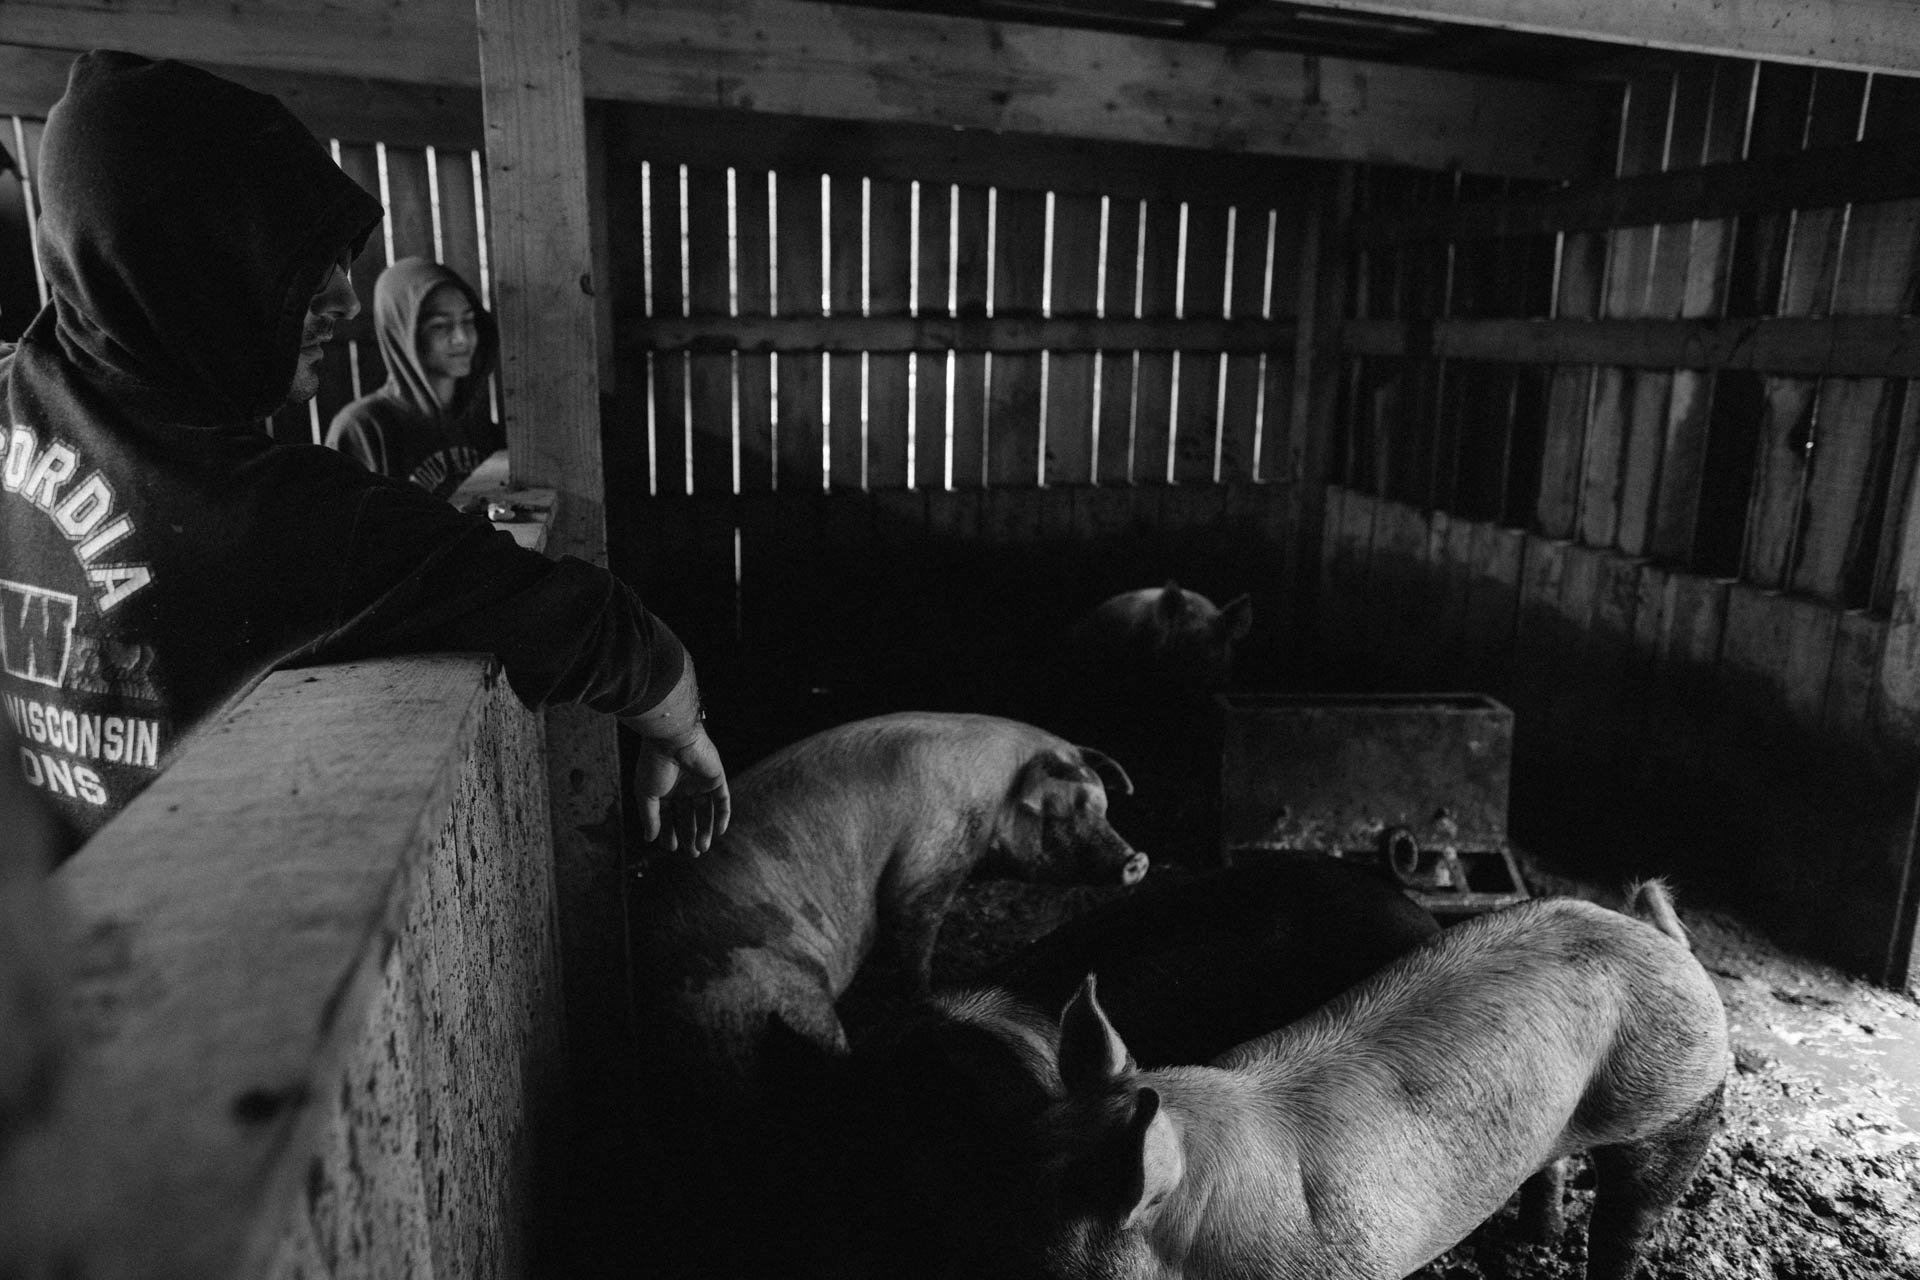 inside-hog-barn-7610